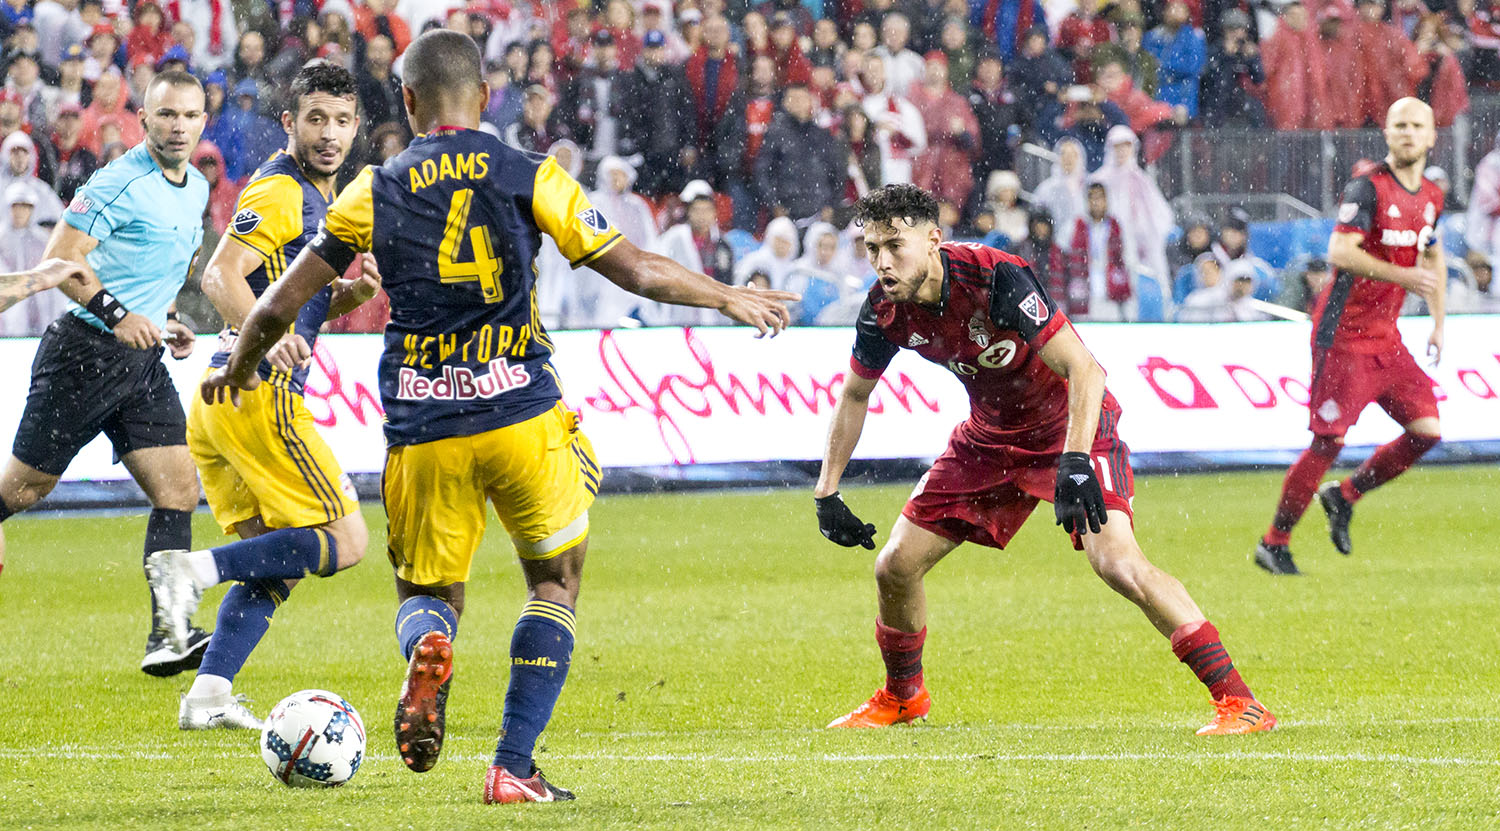 Jonathan Osorio tries to block the ball from being cleared in a Major League Soccer playoff match in 2017. Image by Dennis Marciniak of denMAR Media.